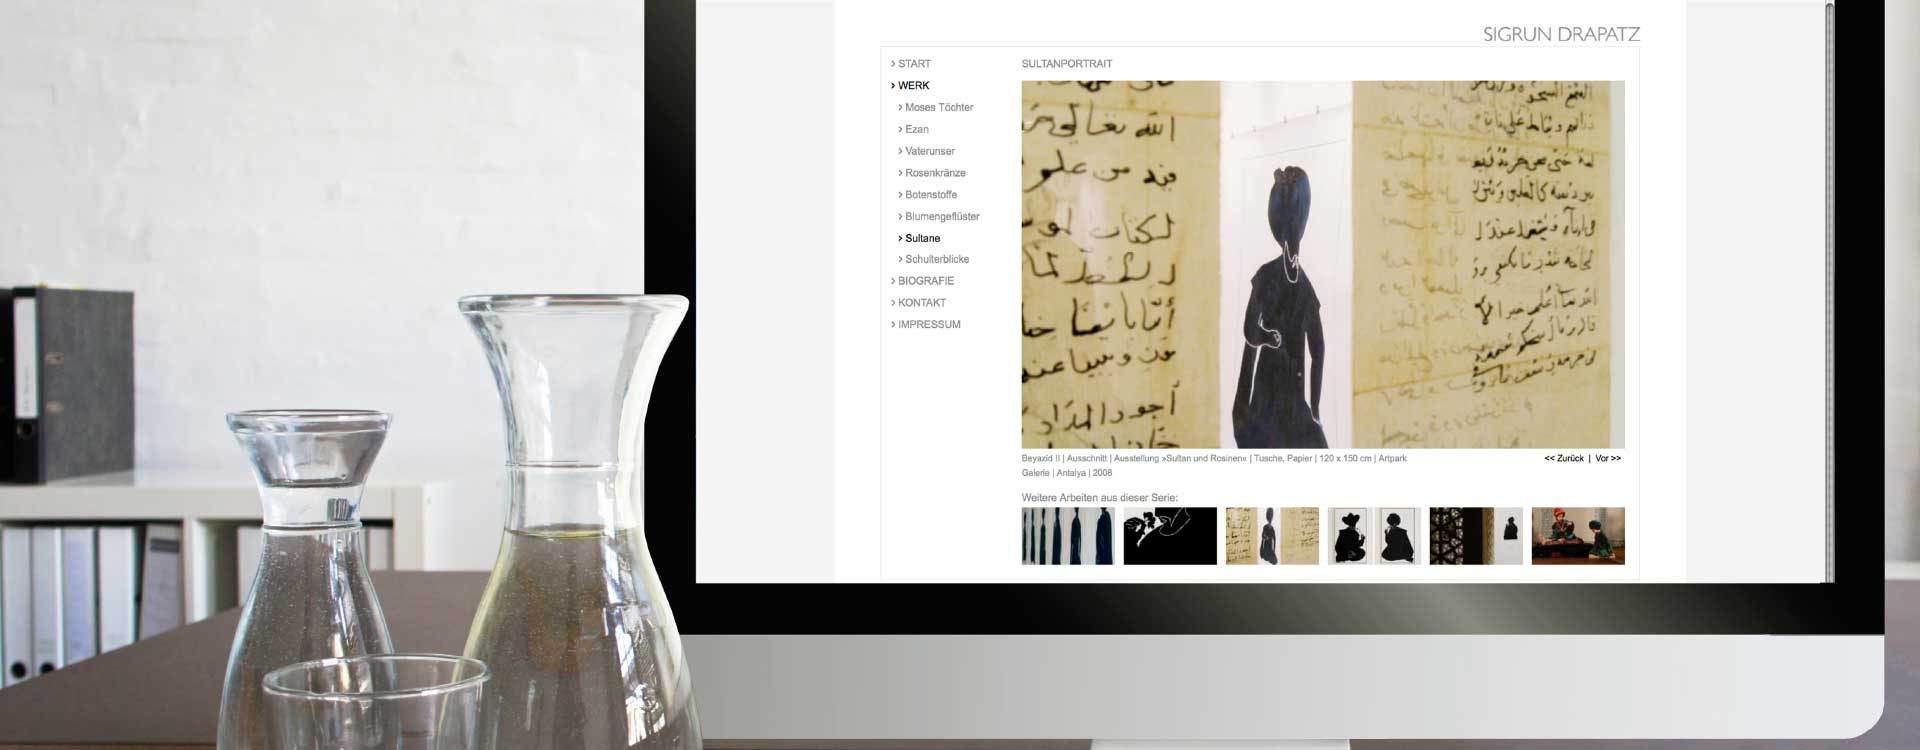 Website for the art of Sigrun Drapatz; Design: Kattrin Richter | Graphic Design Studio